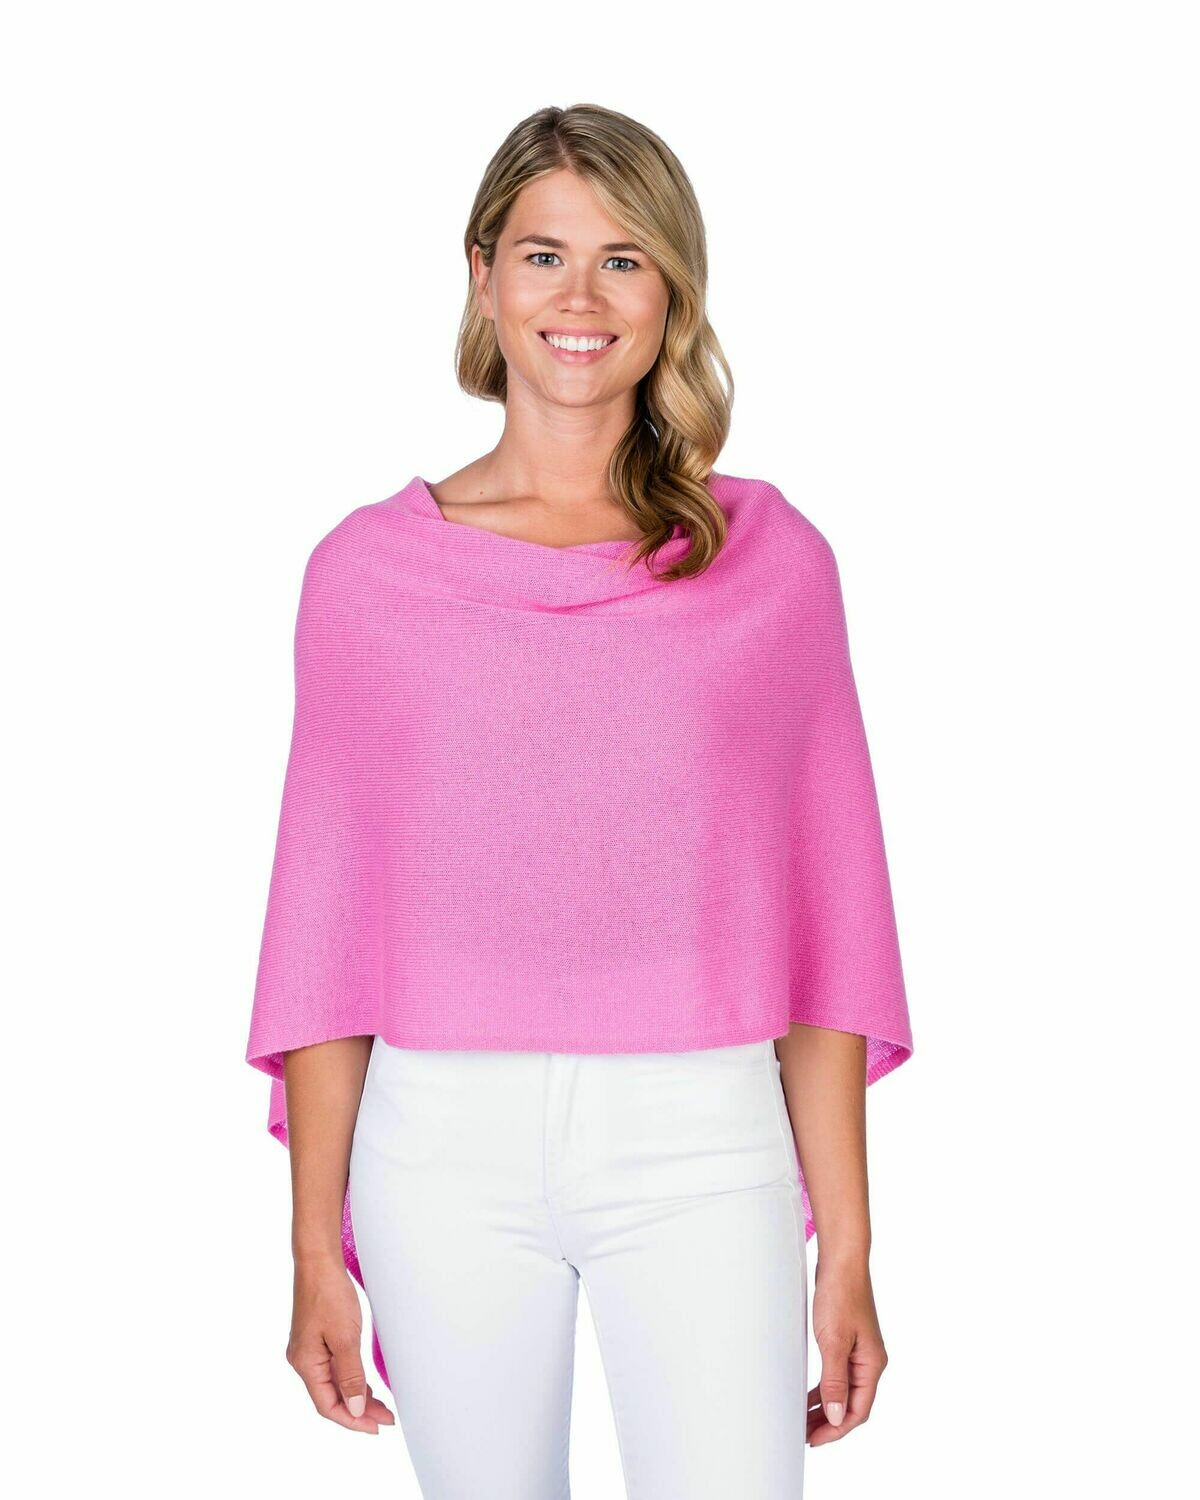 Jackie Z Cashmere Dress Topper in Candy